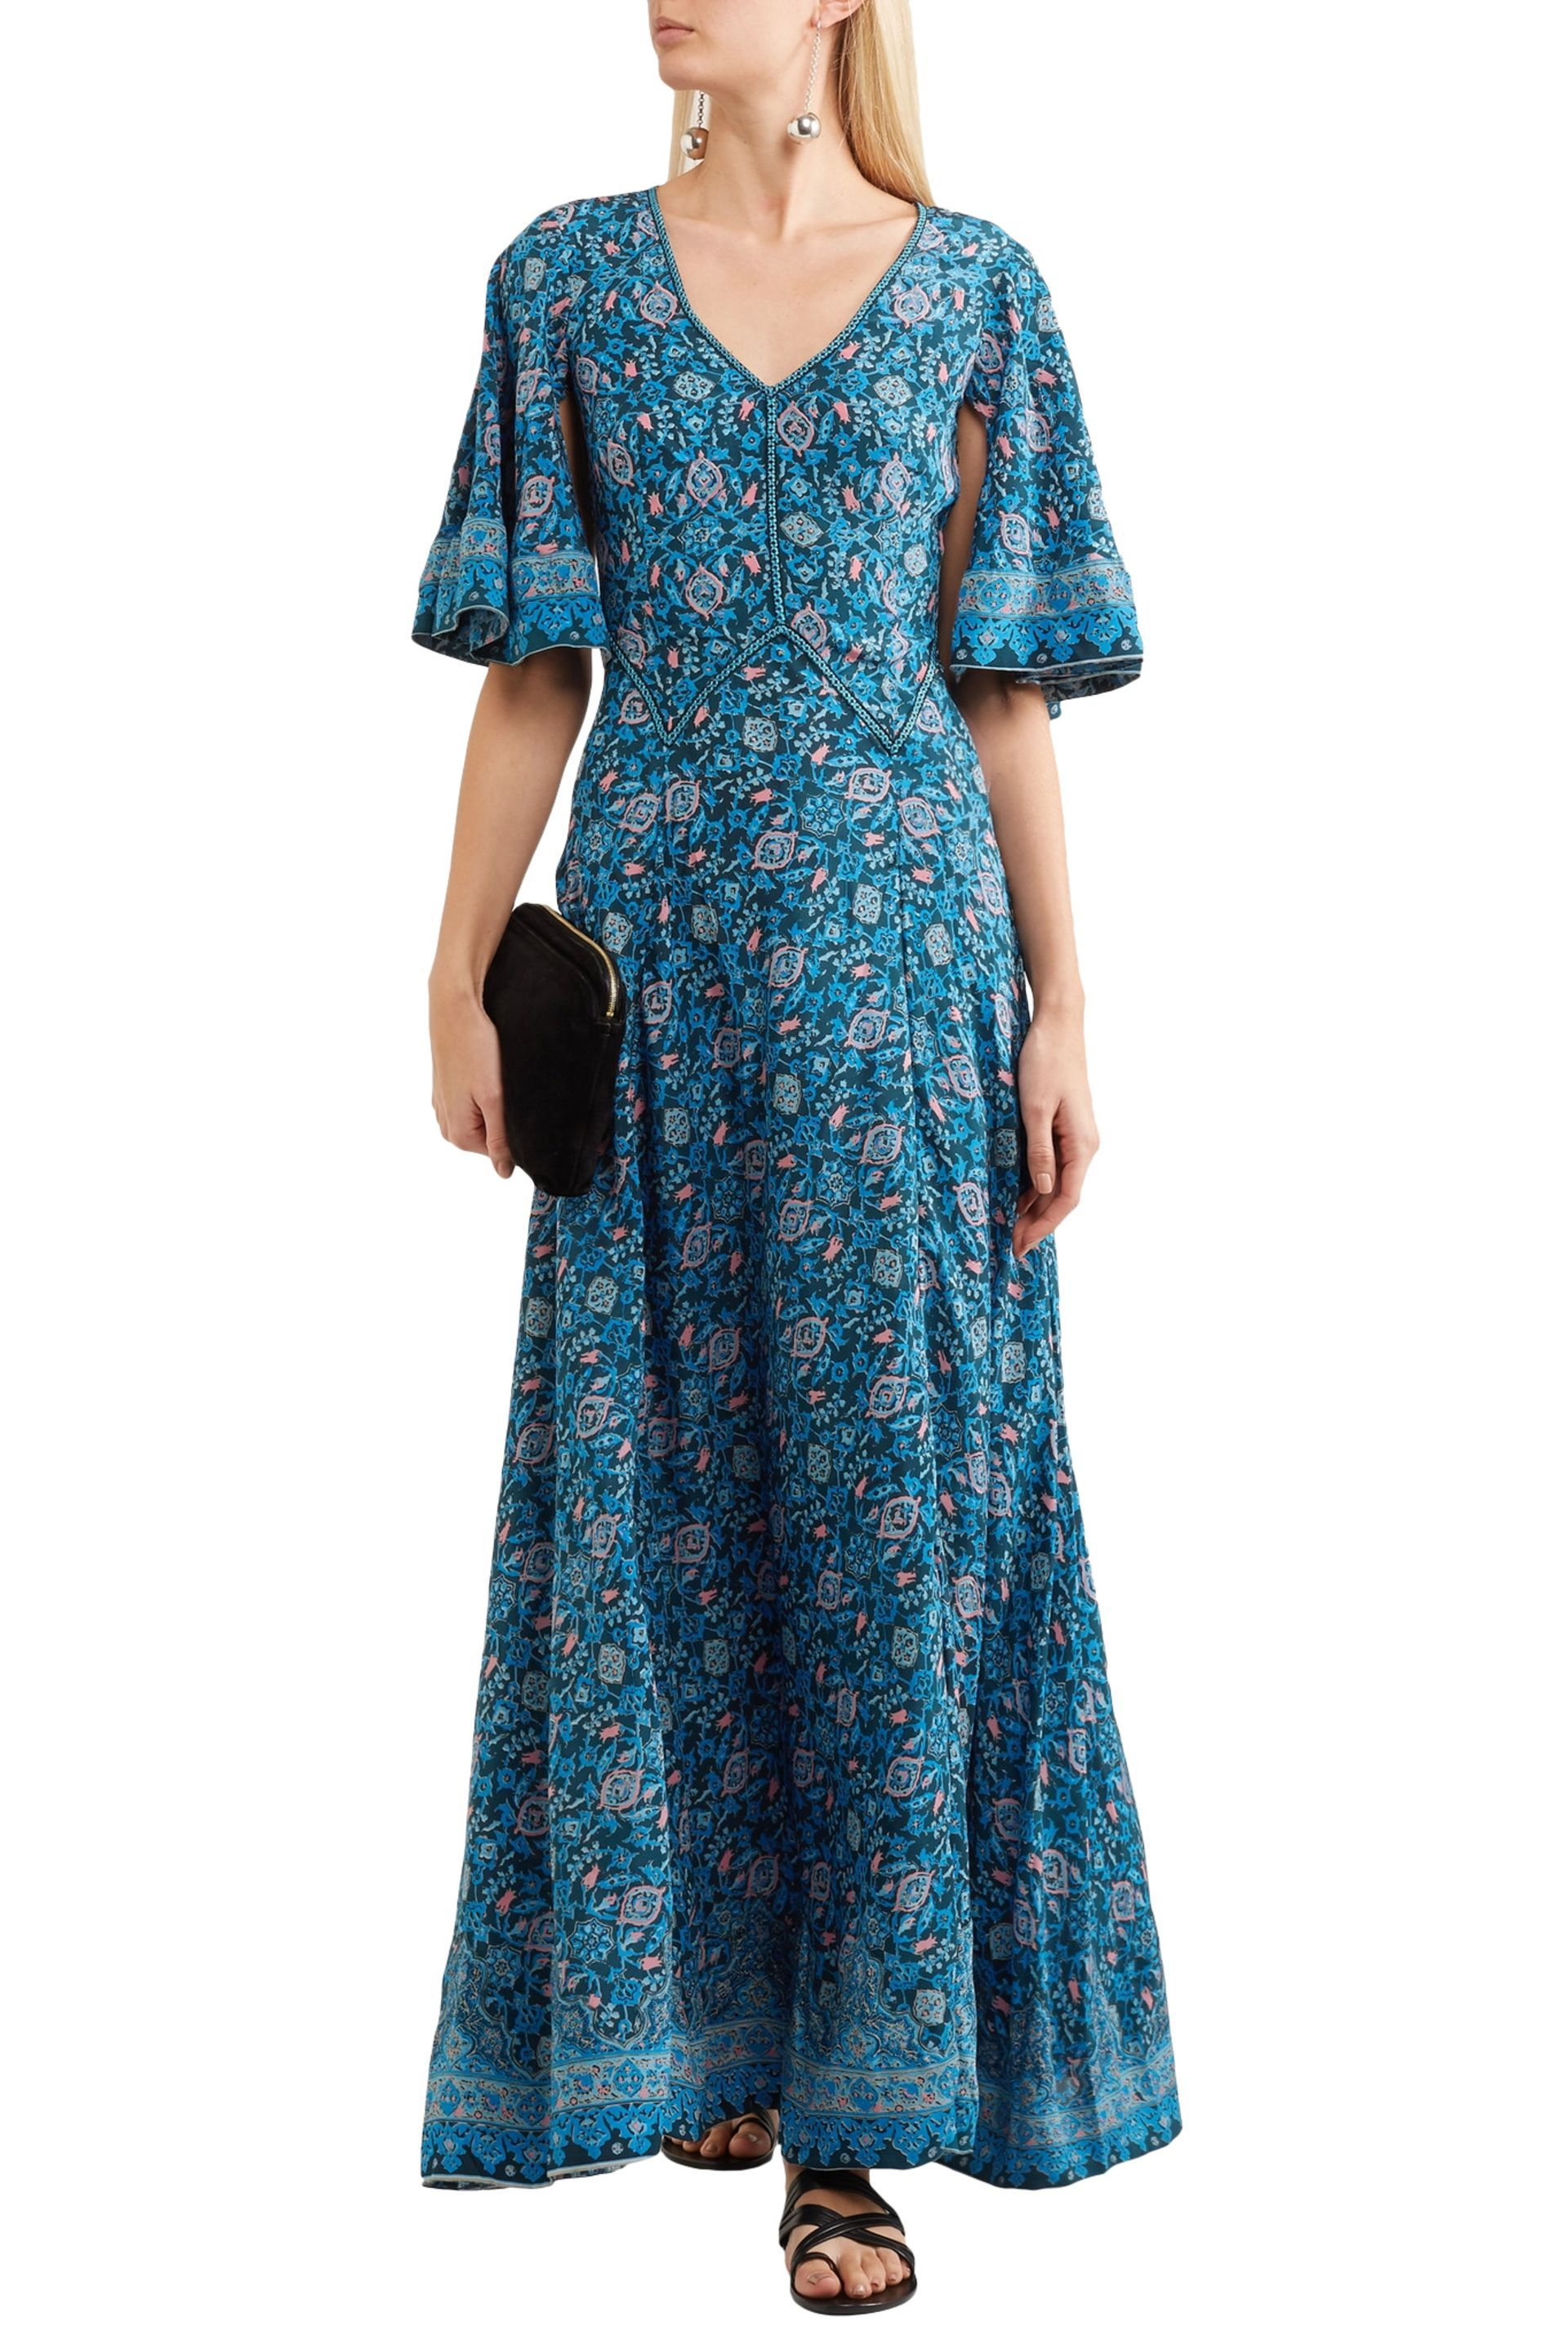 Talitha Woman Printed Silk Crepe De Chine Maxi Dress Navy Size S Talitha HBwLf